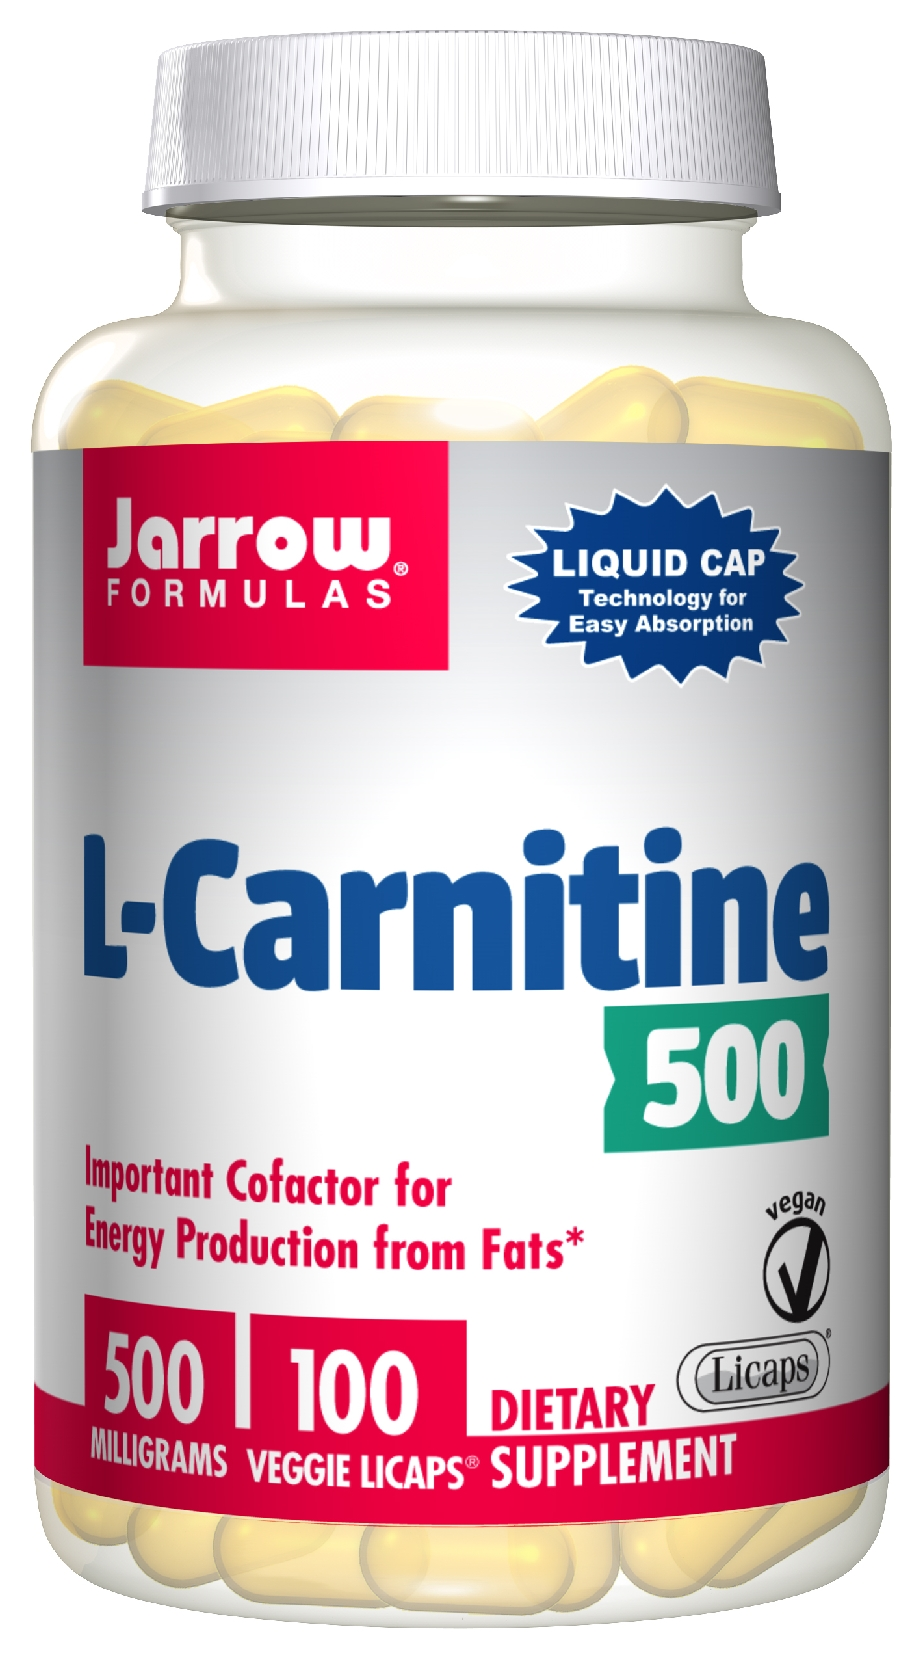 L-Carnitine Liquid Cap 500 mg 100 Vegetarian Licaps by Jarrow Formulas